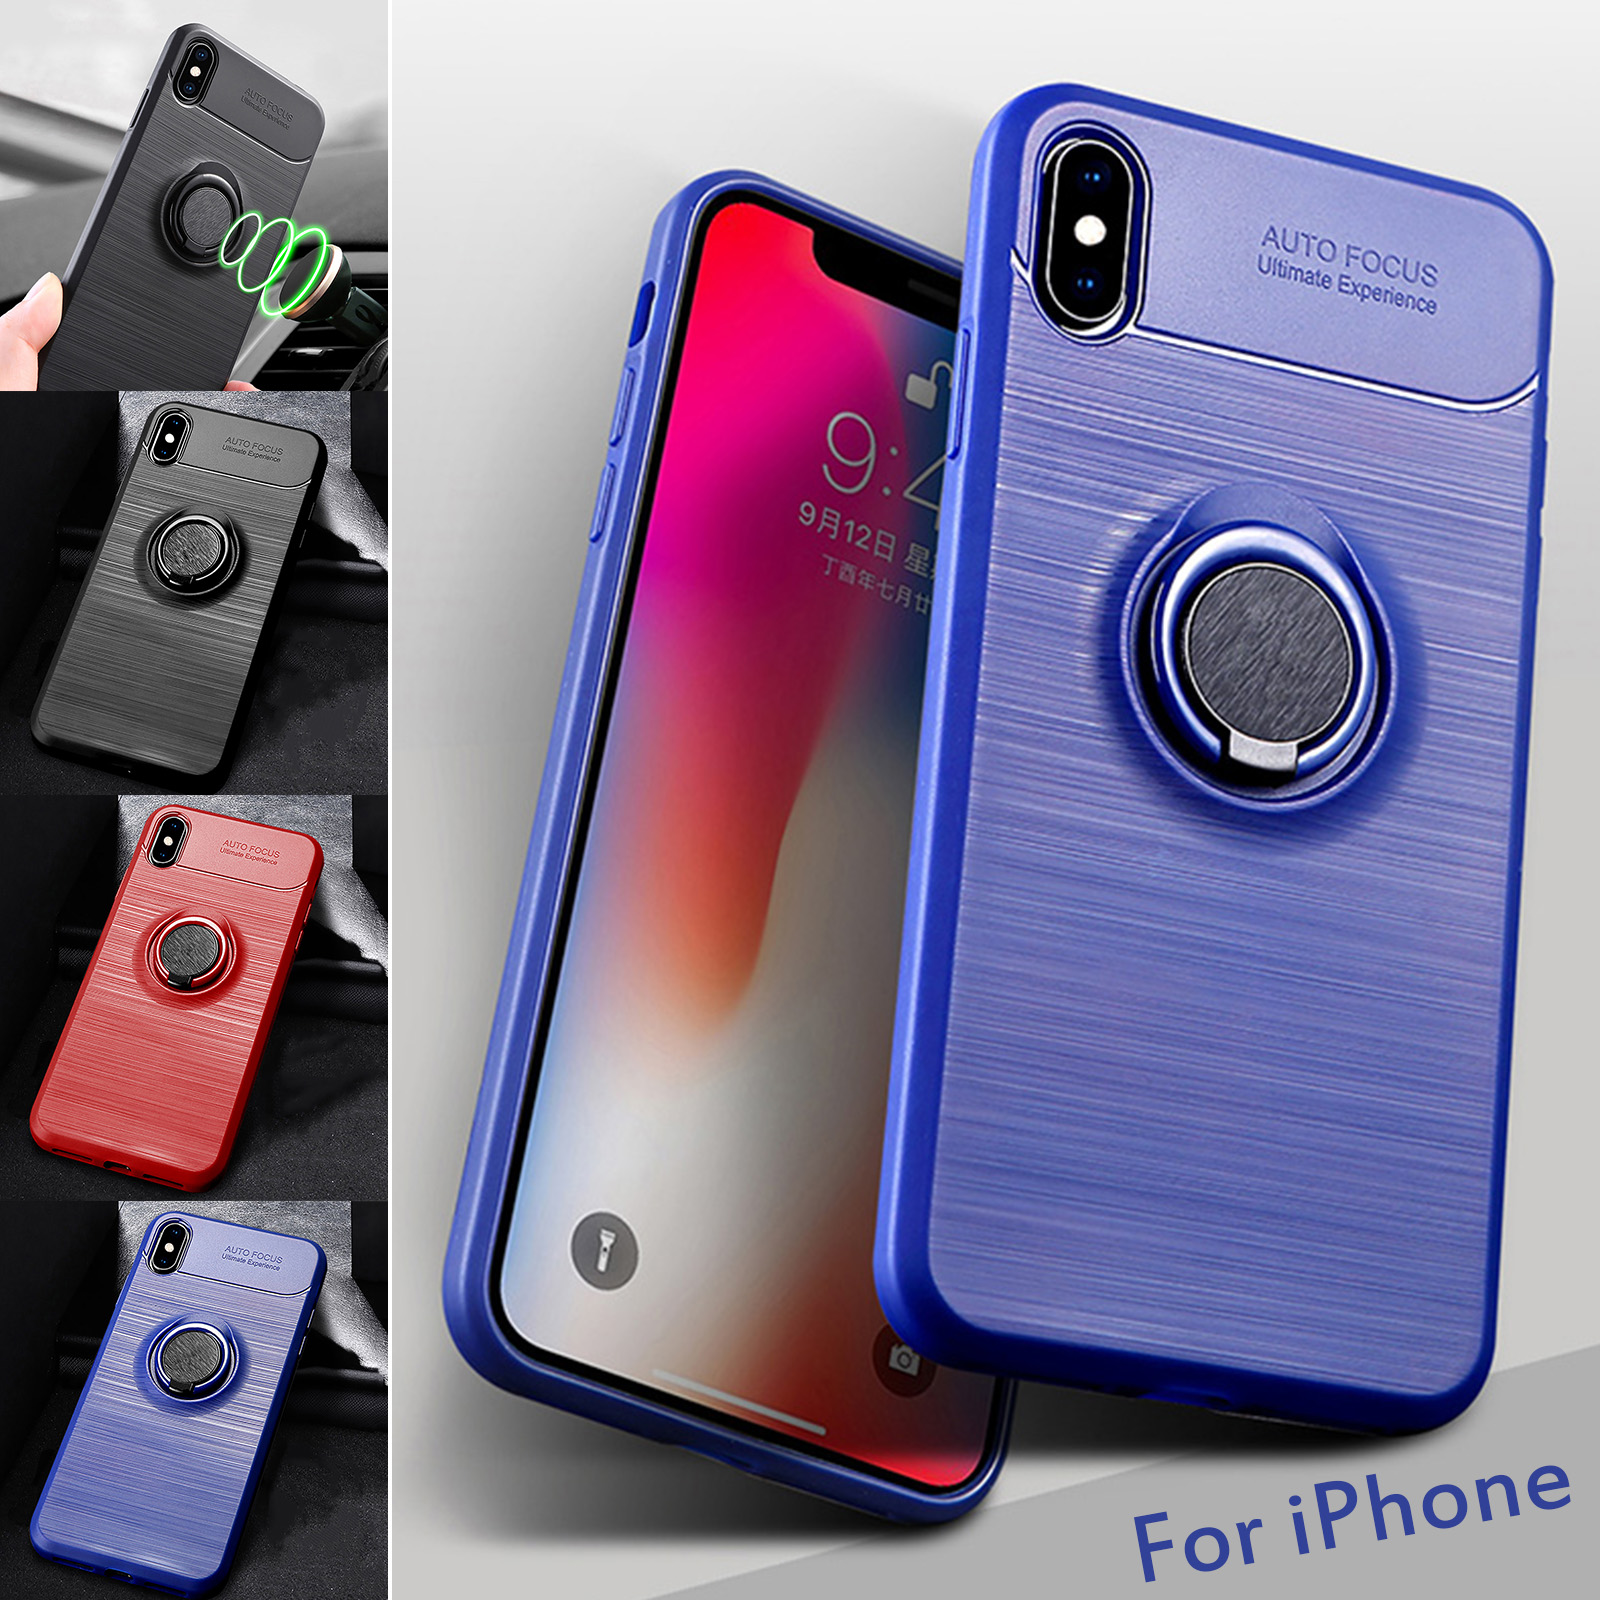 Details about Magnetic Soft TPU Case 360 Ring Holder Stand Cover For iPhone XS Max XR 7 8 Plus